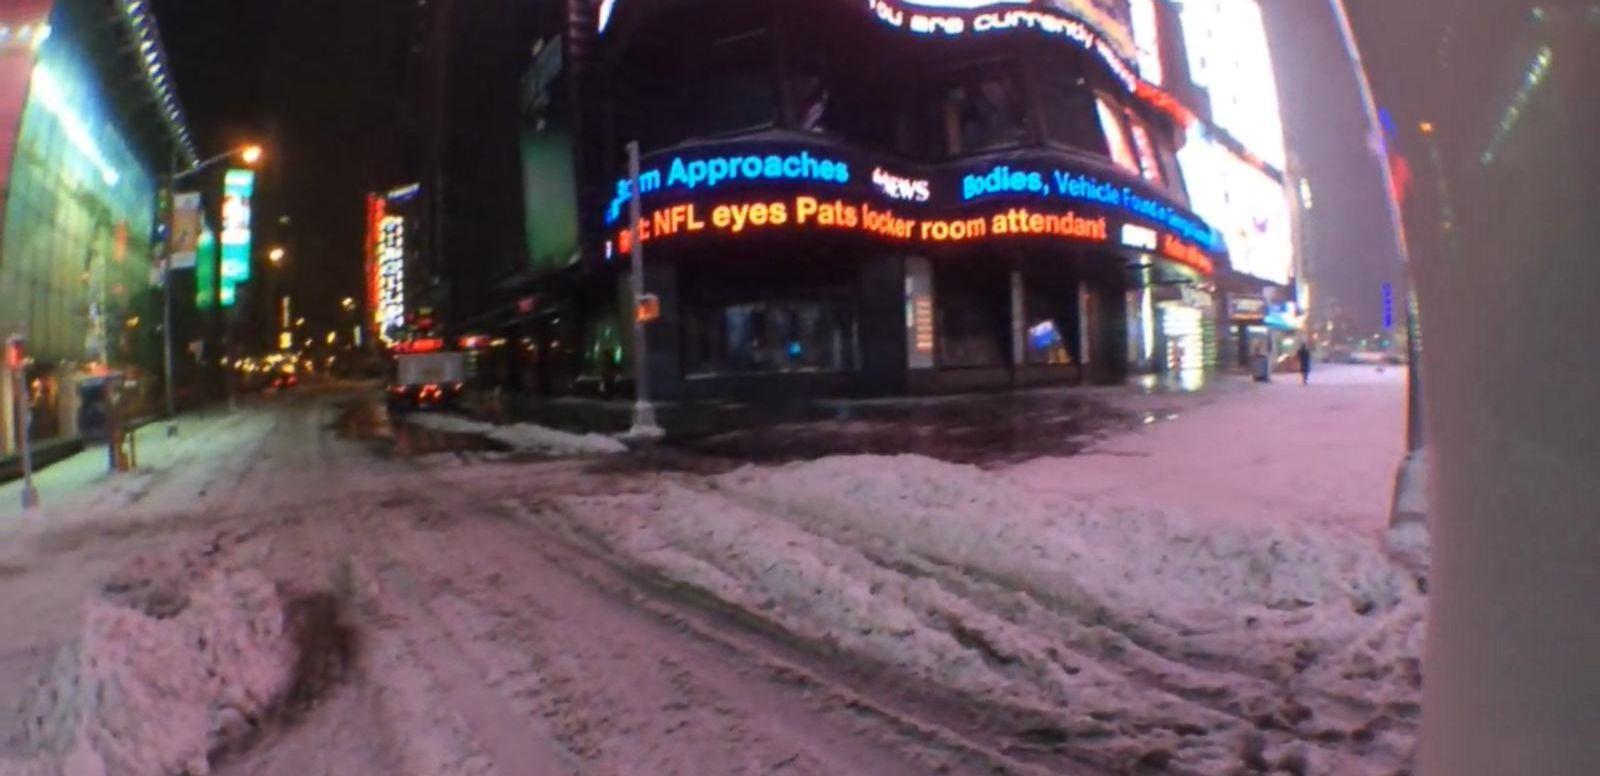 VIDEO: 2015 Blizzard Shuts Down Major Cities in Northeast